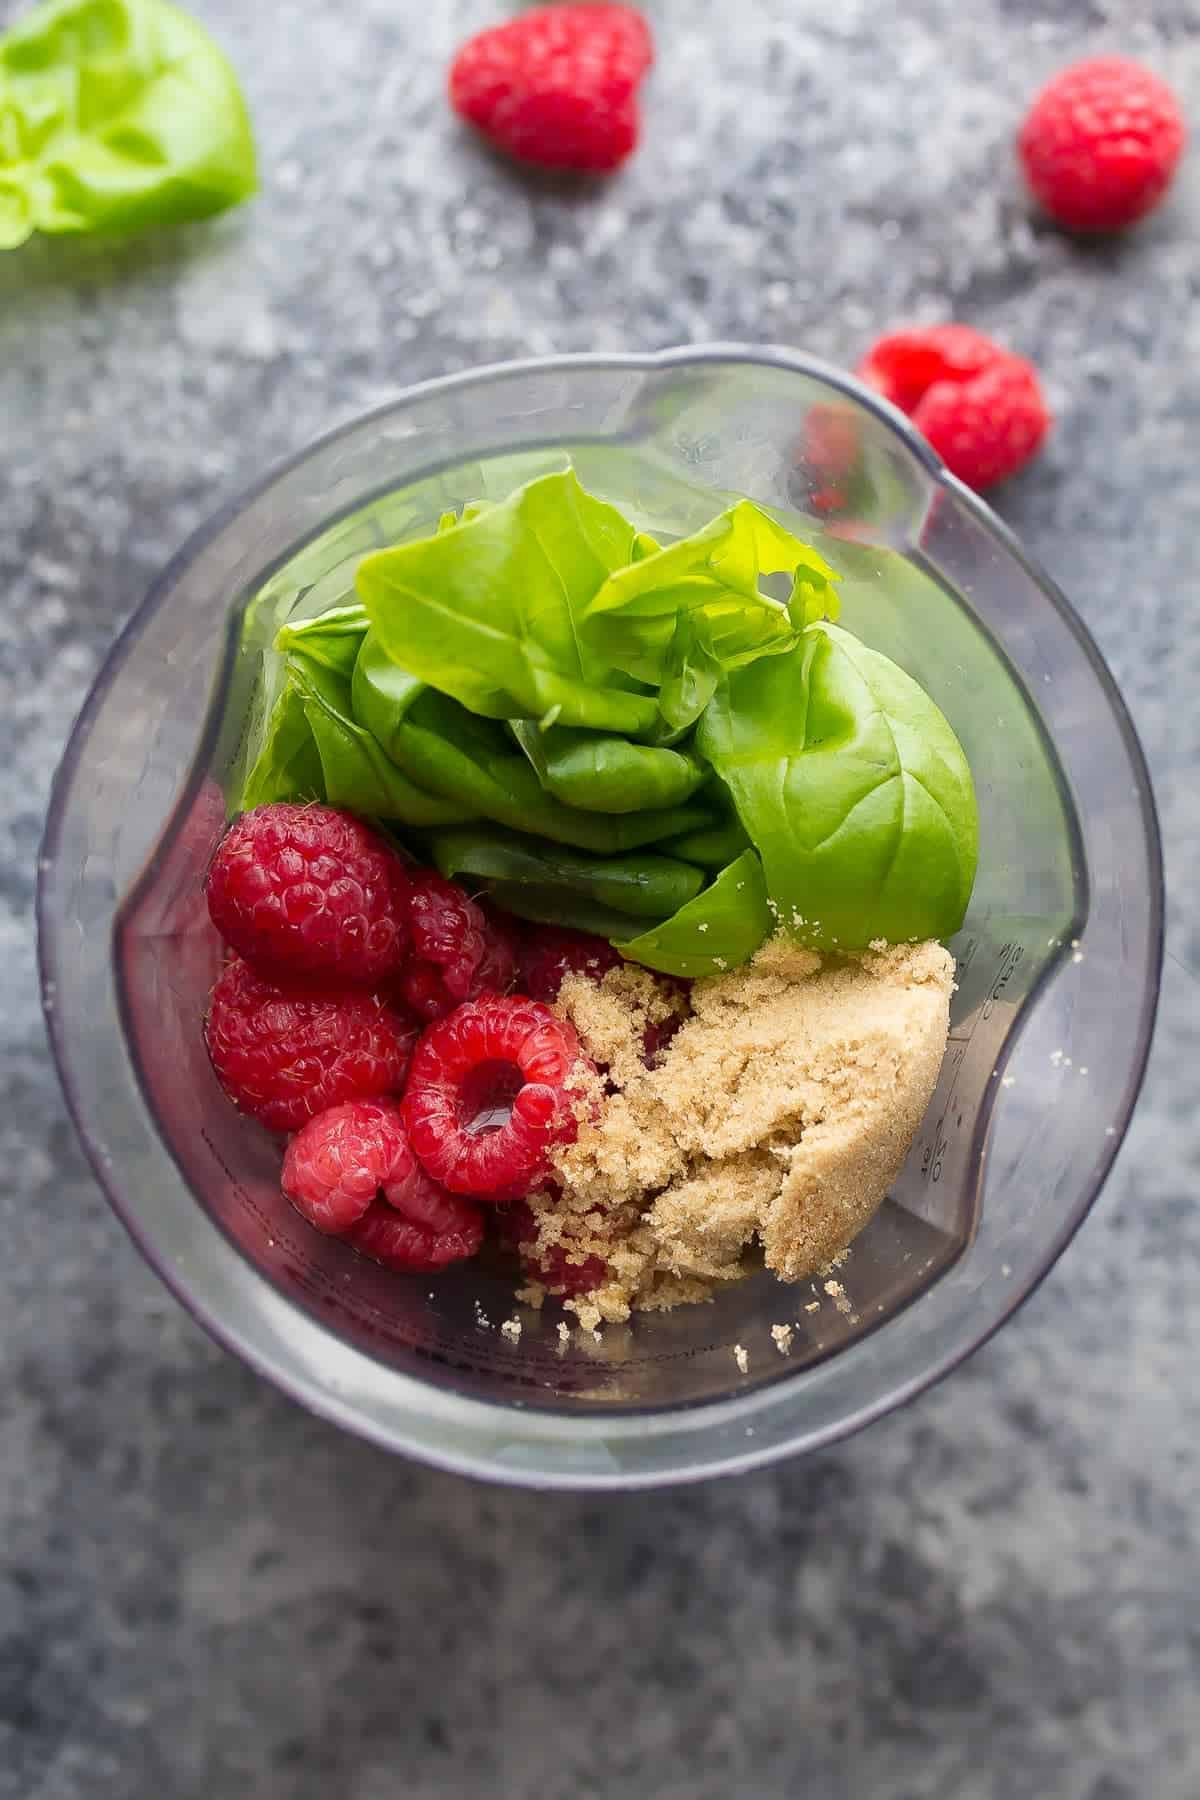 This Raspberry Basil Vinaigrette is ready in 3 minutes, contains a full cup of raspberries, and no oil! A delicious, healthier salad dressing option.